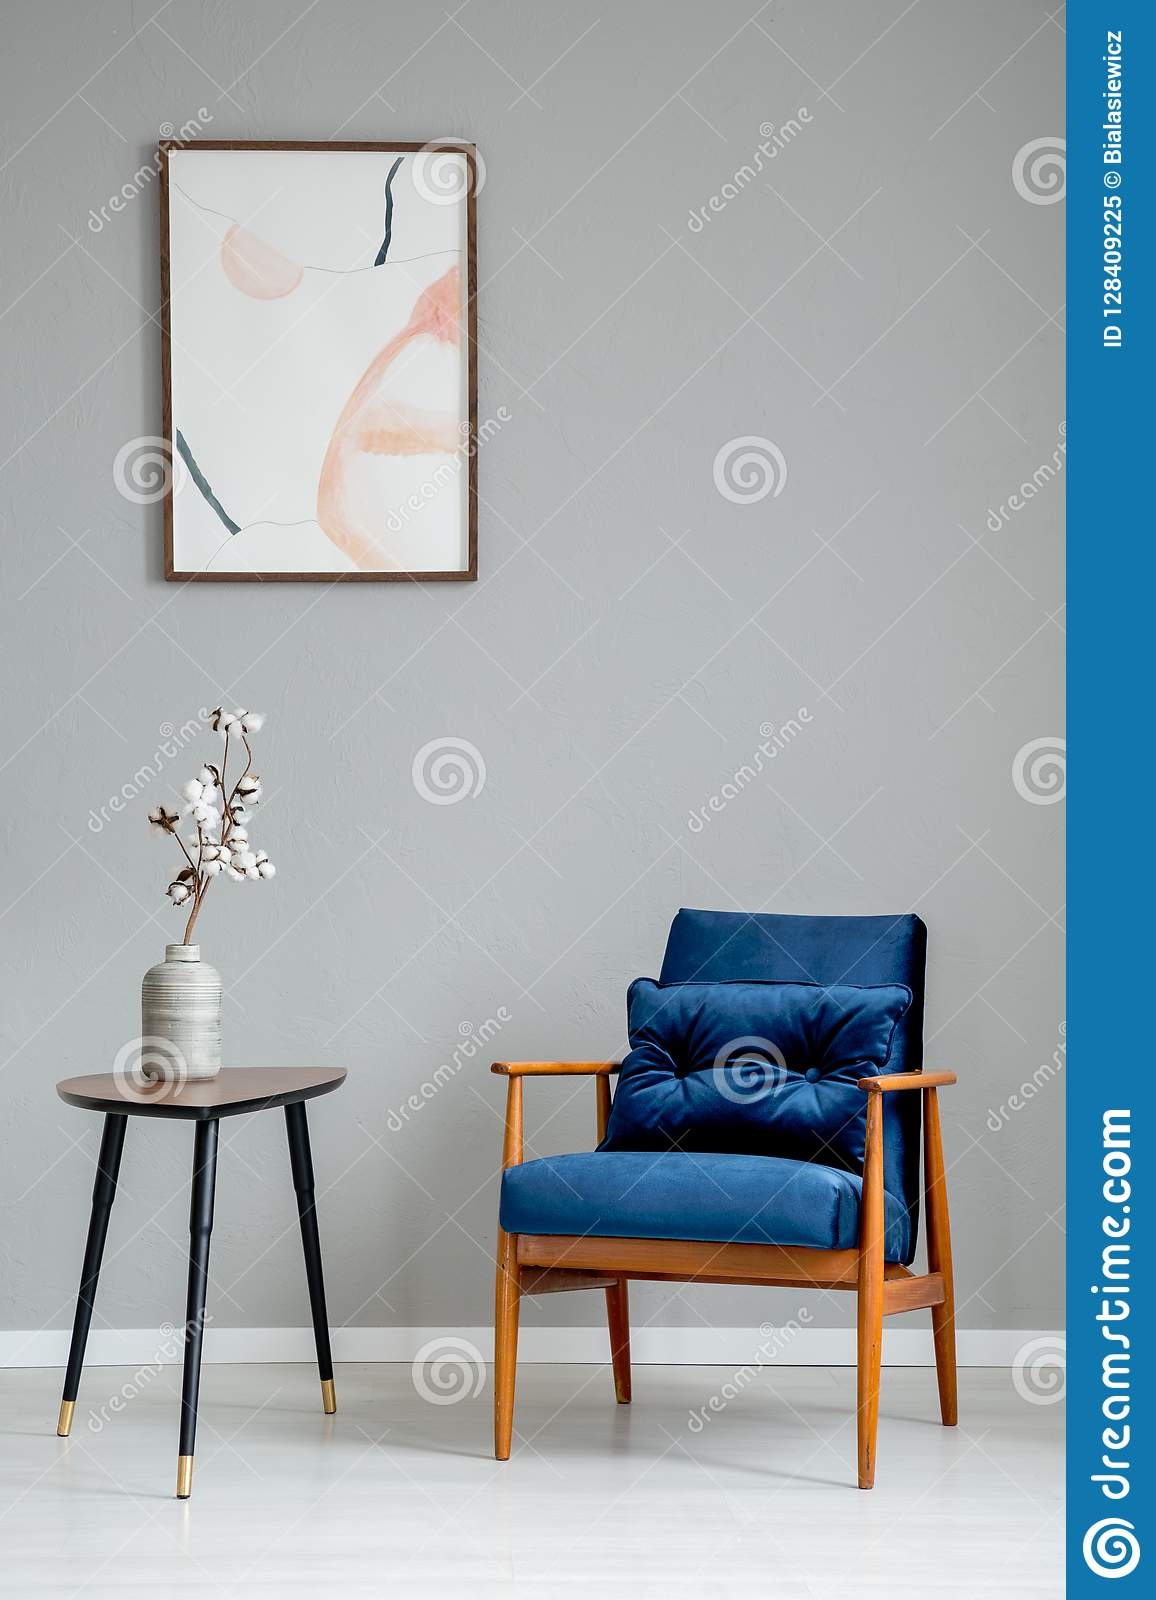 Flowers on wooden table next to blue armchair in grey apartment interior with poster.